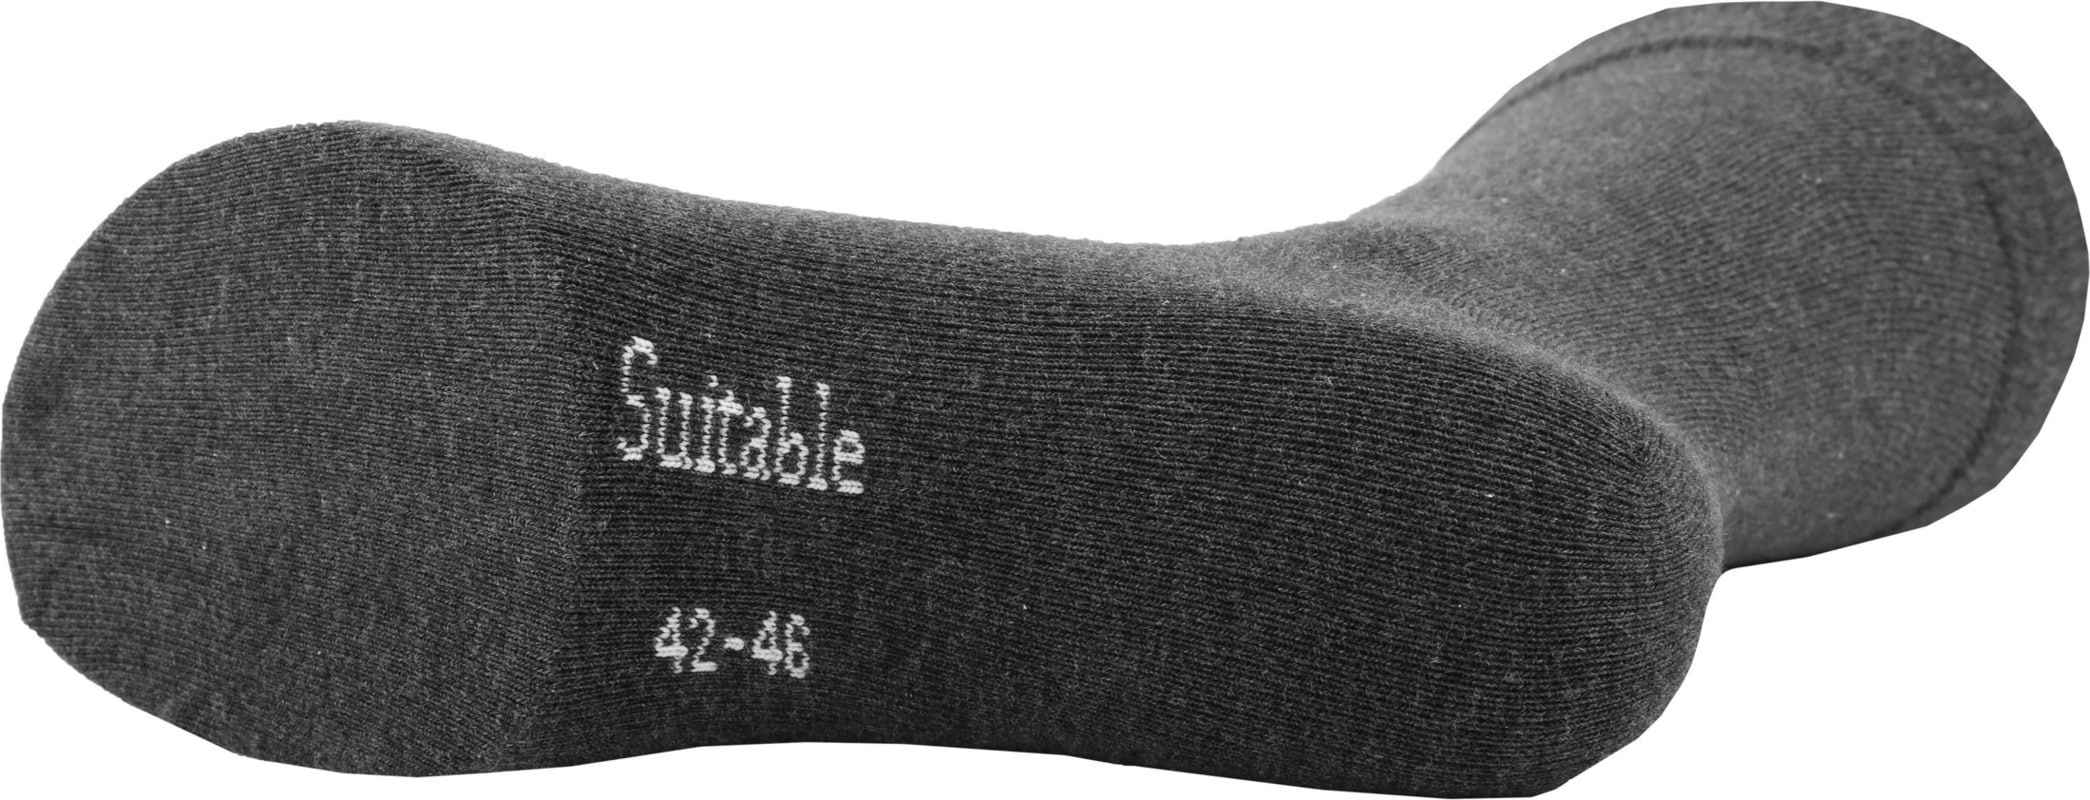 Suitable Bio-Baumwolle Socken Dunkelgrau 6-Pack Foto 3